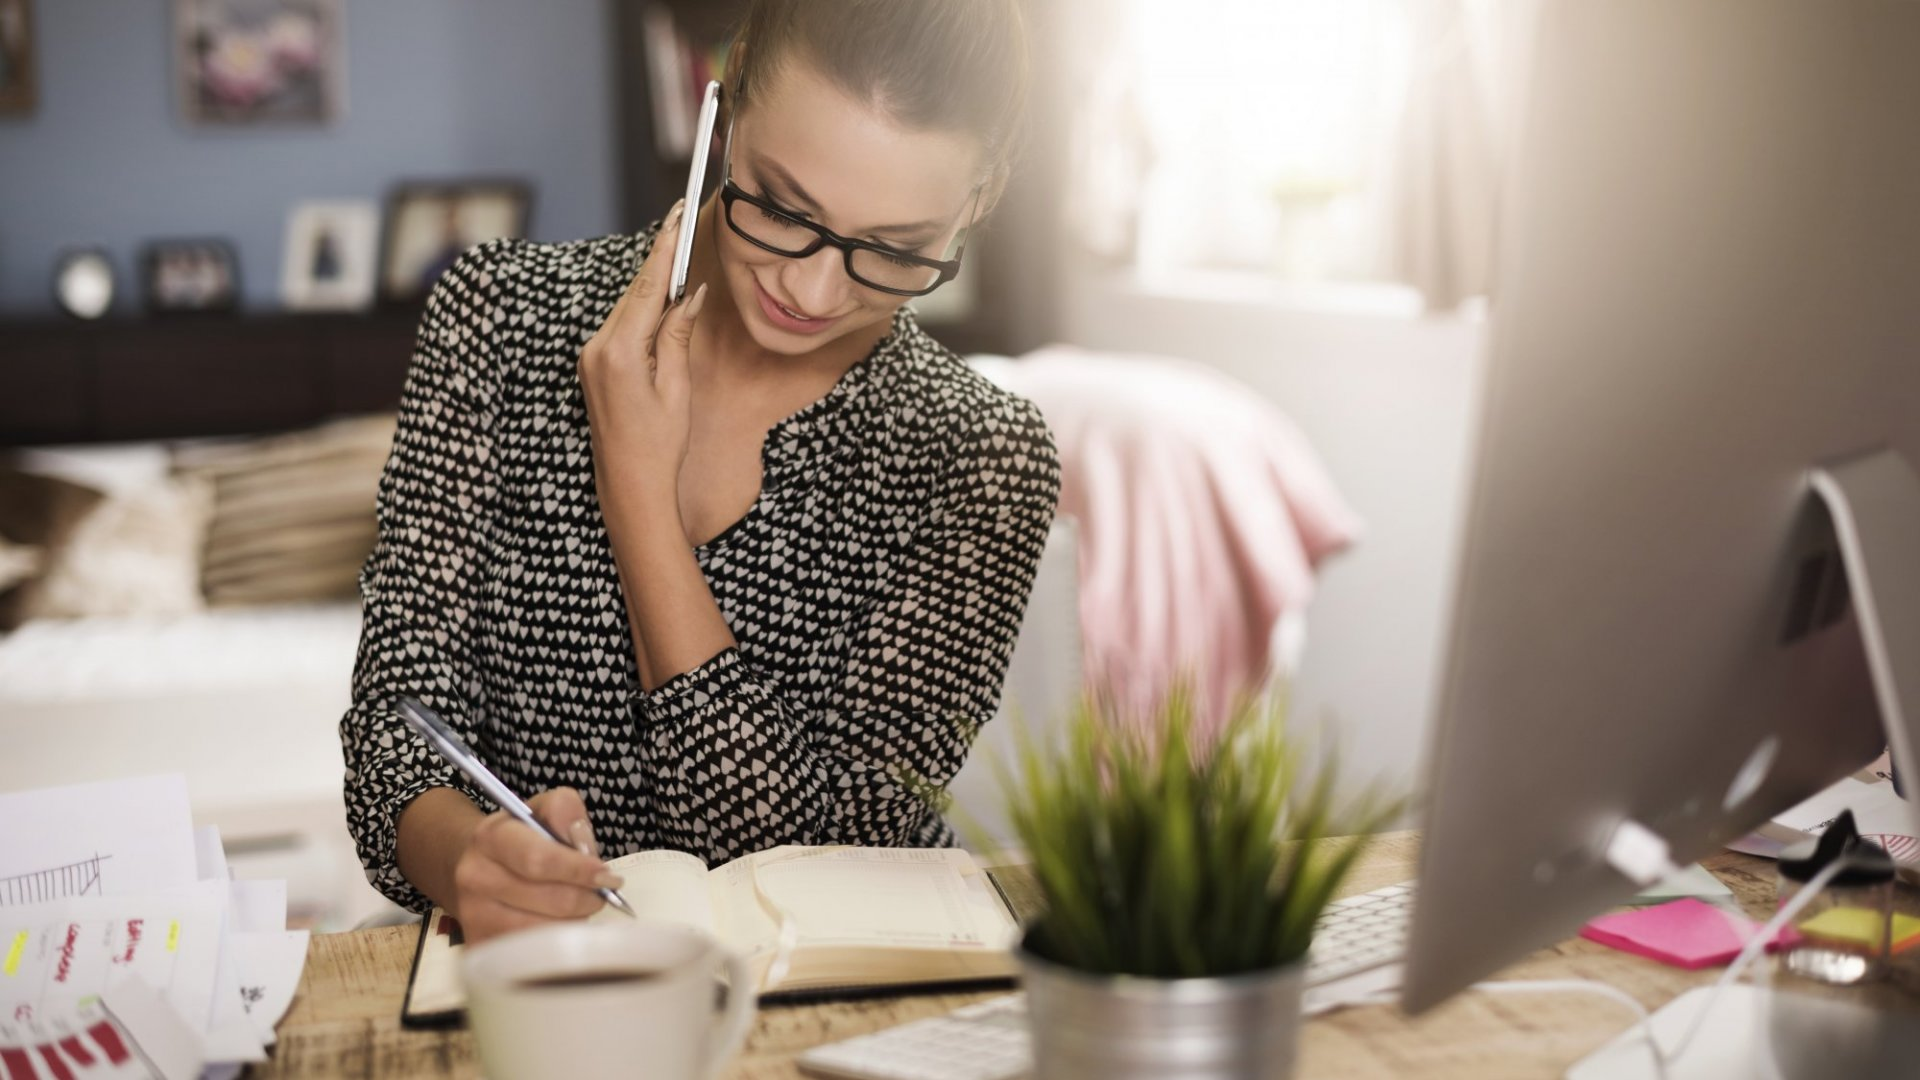 Want to Work From Home? 9 More Remote Jobs for Salespeople, Writers, Marketers and More